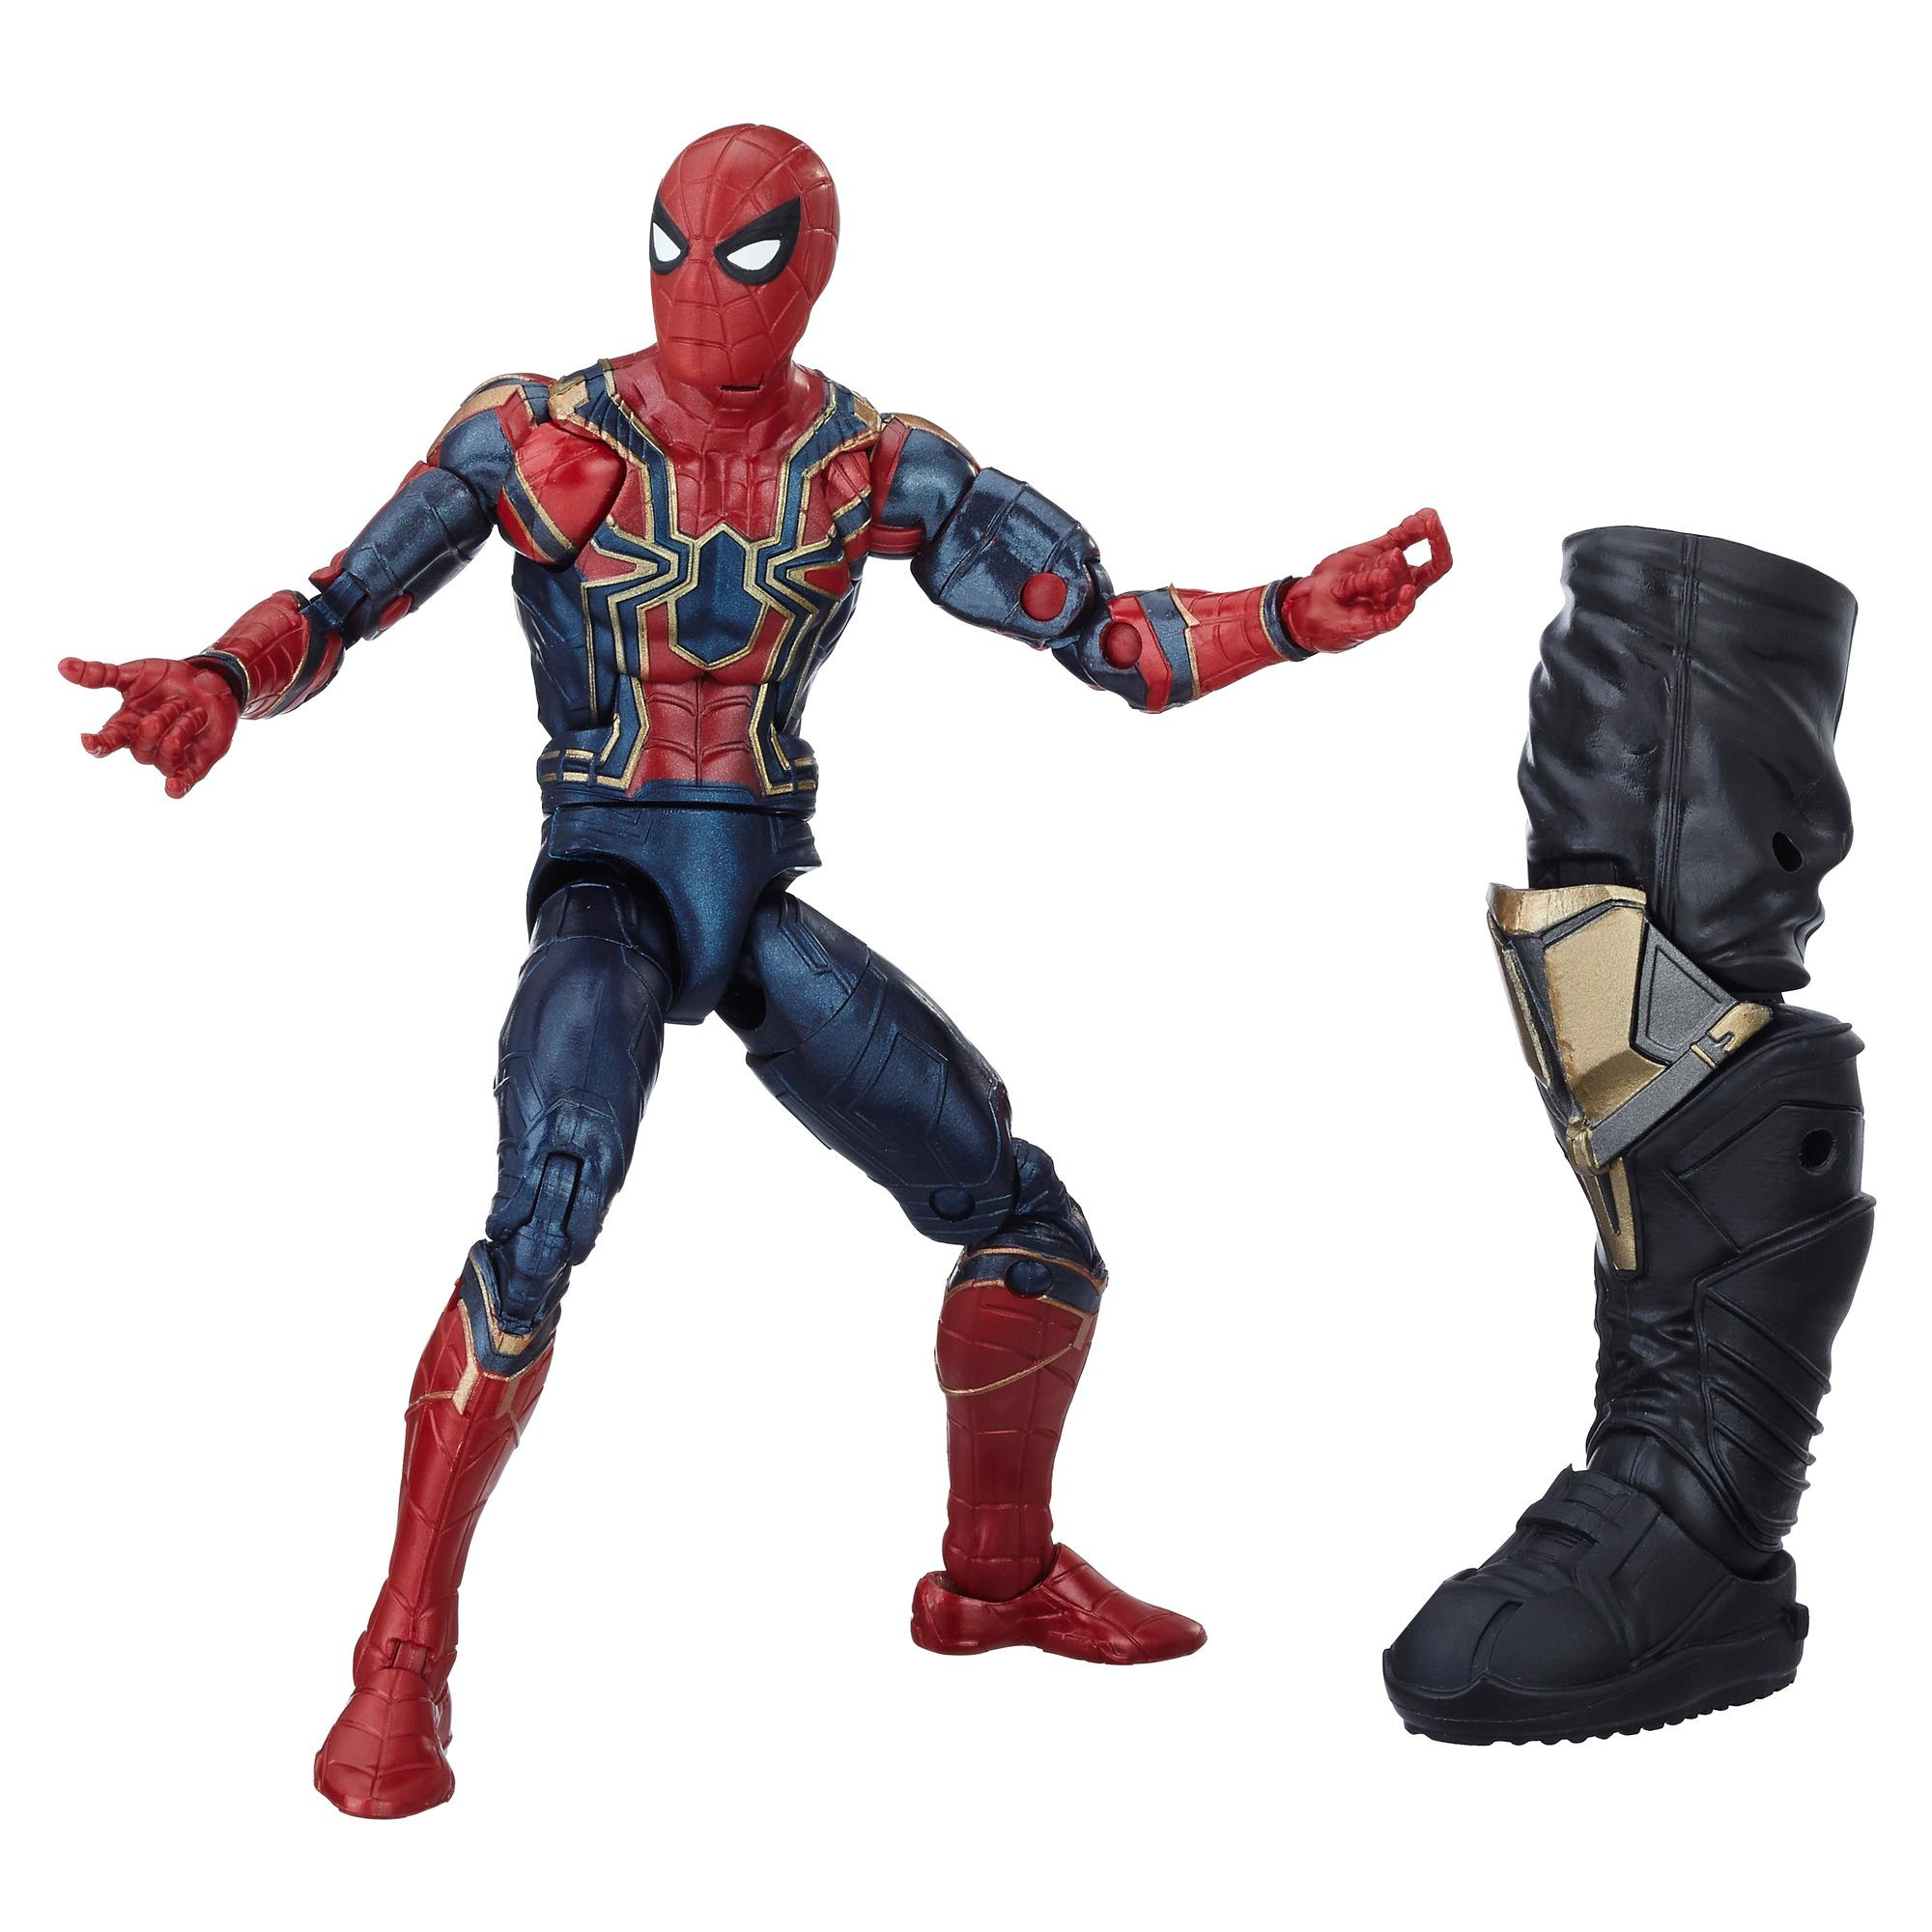 Avengers Marvel Legends Series - Spider-Man de 15 cm